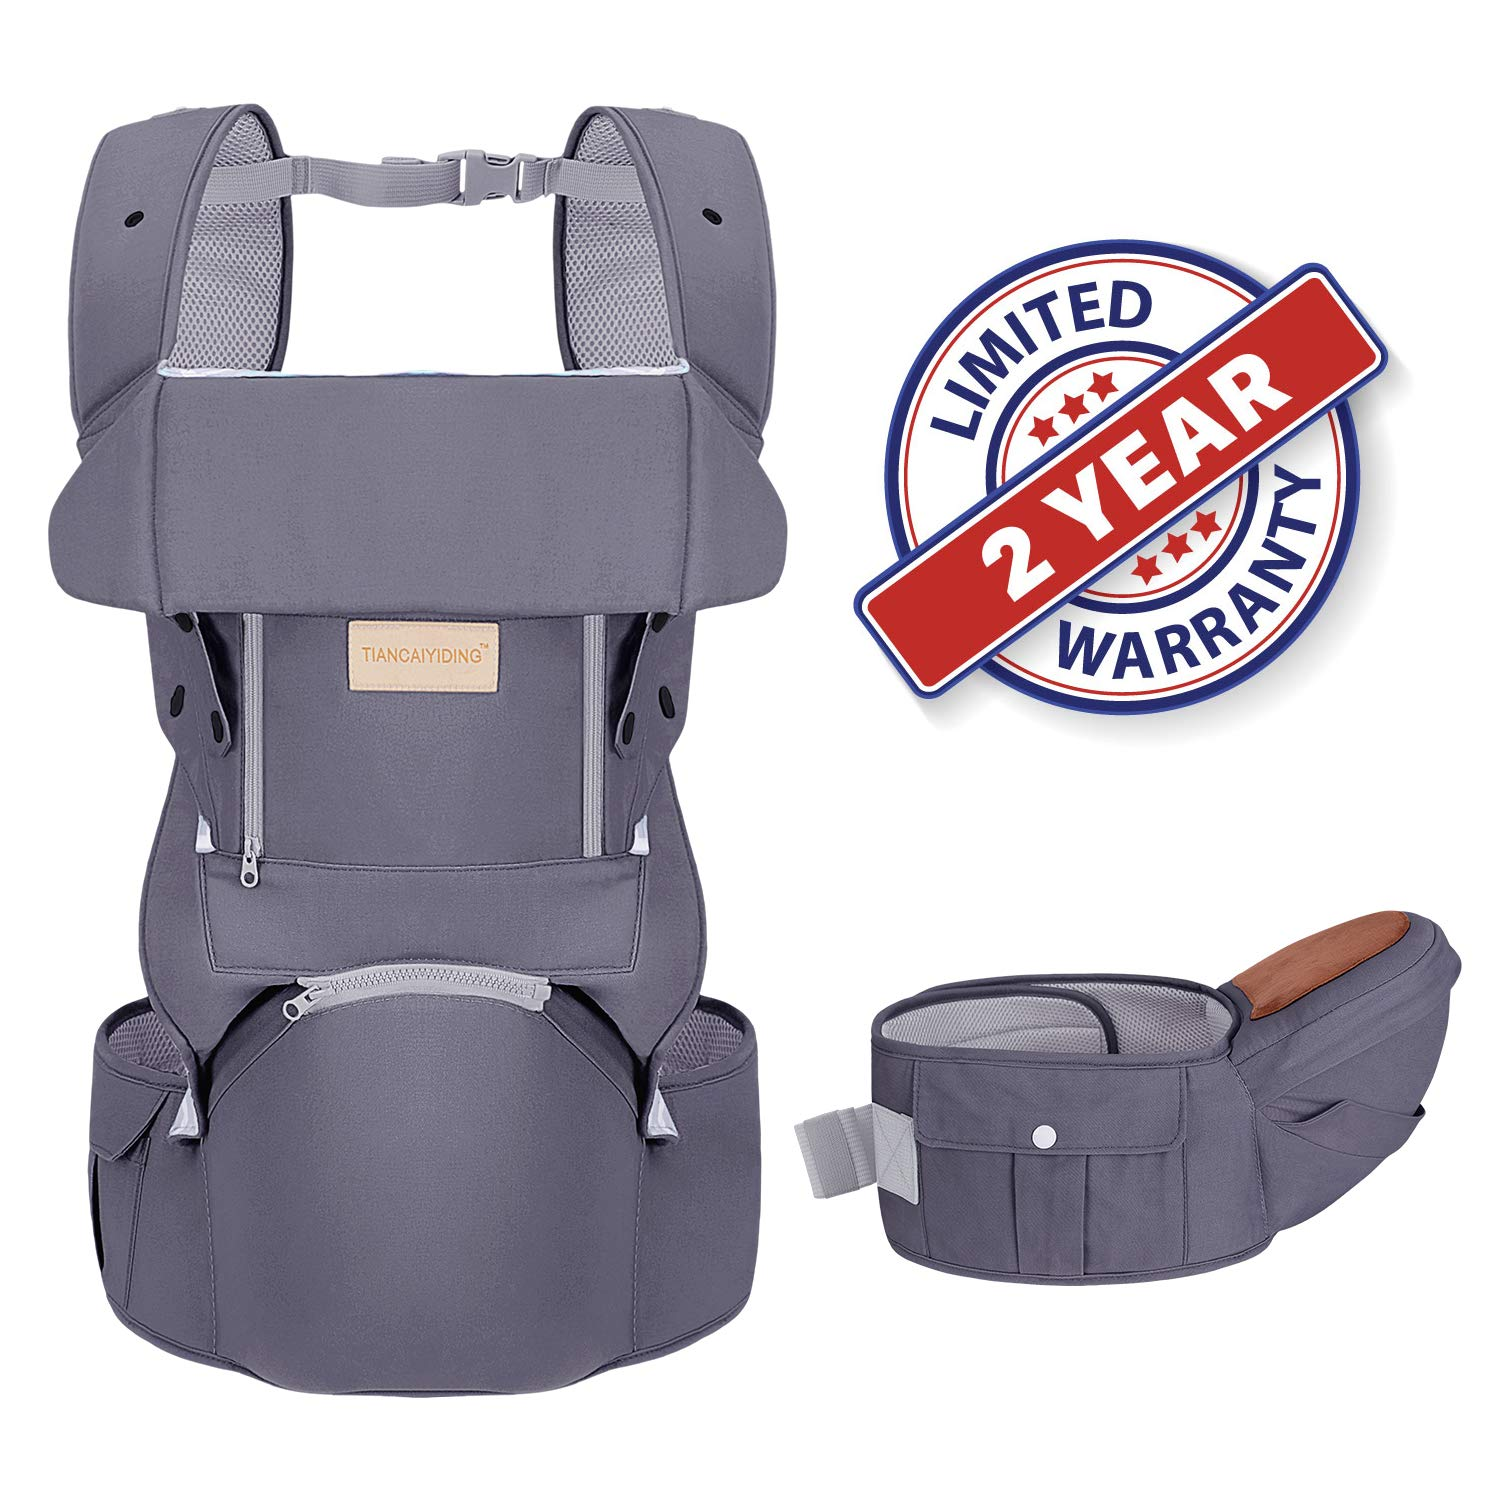 Infant Baby Wrap Carrier with Stool – All Positions Baby Carrier, Baby Hip Seat Ergonomic Carrier, Newborn to Toddlers Carrier with Soft Breathable Air Mesh, All Adjustable Buckles Dark Grey, 1 Pack